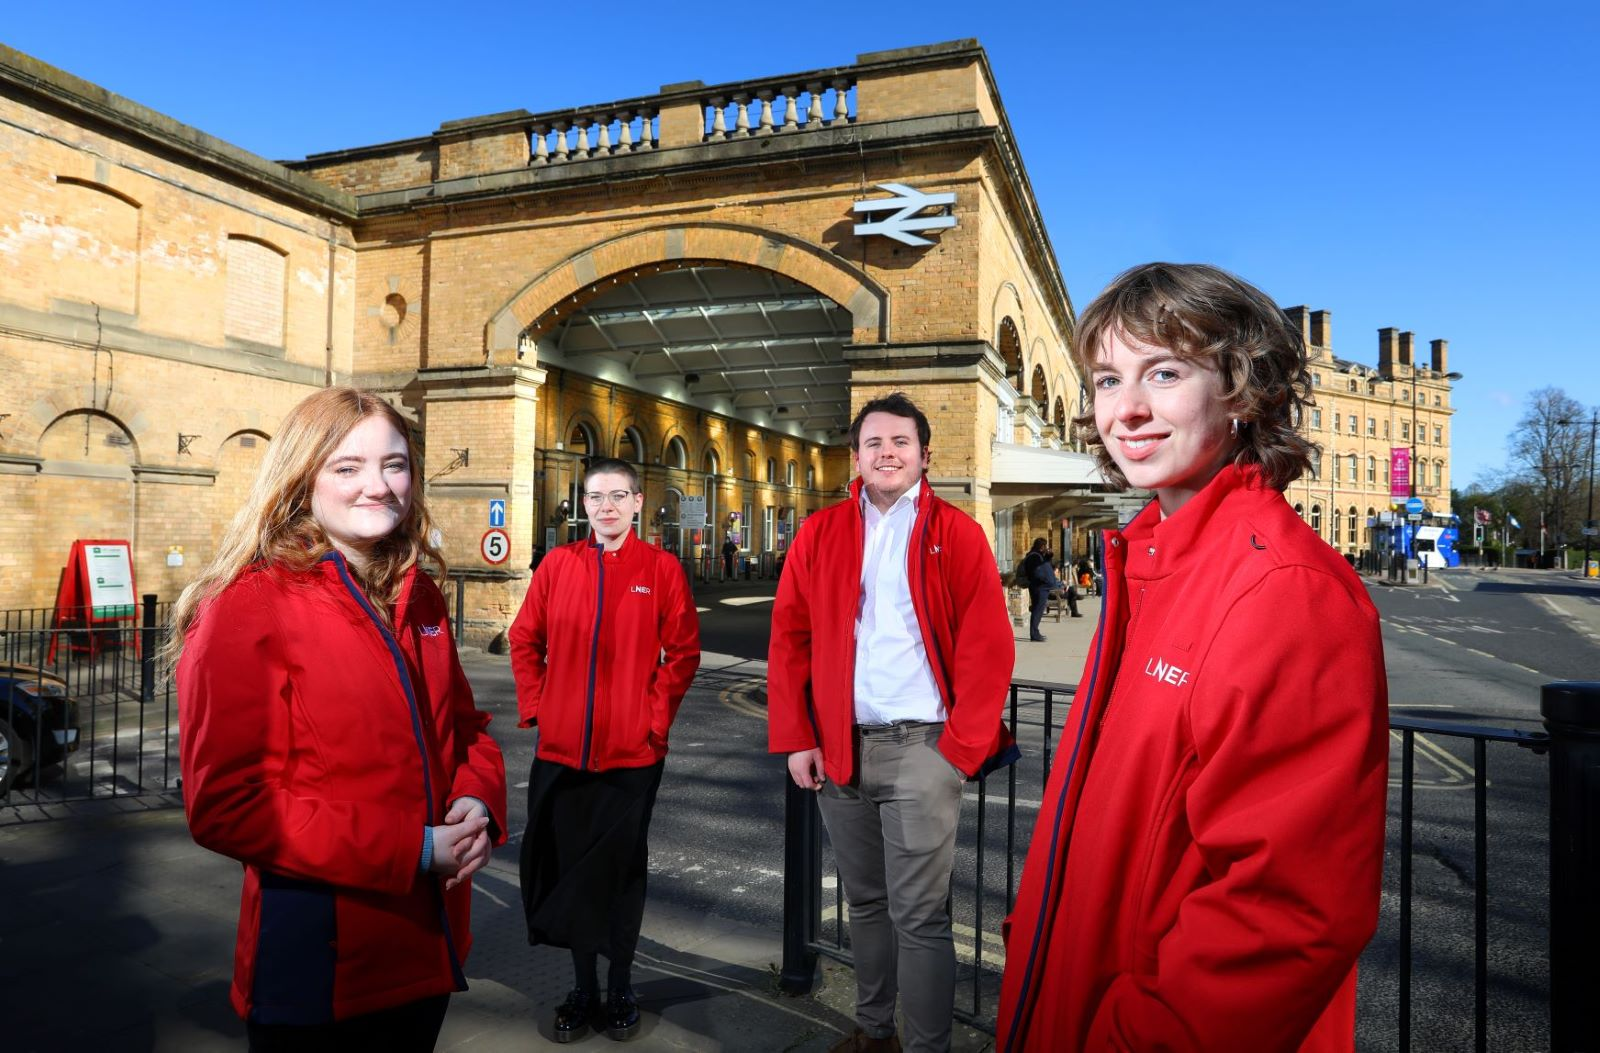 LNER Kickstarts Young People's Careers With Experience Of Rail